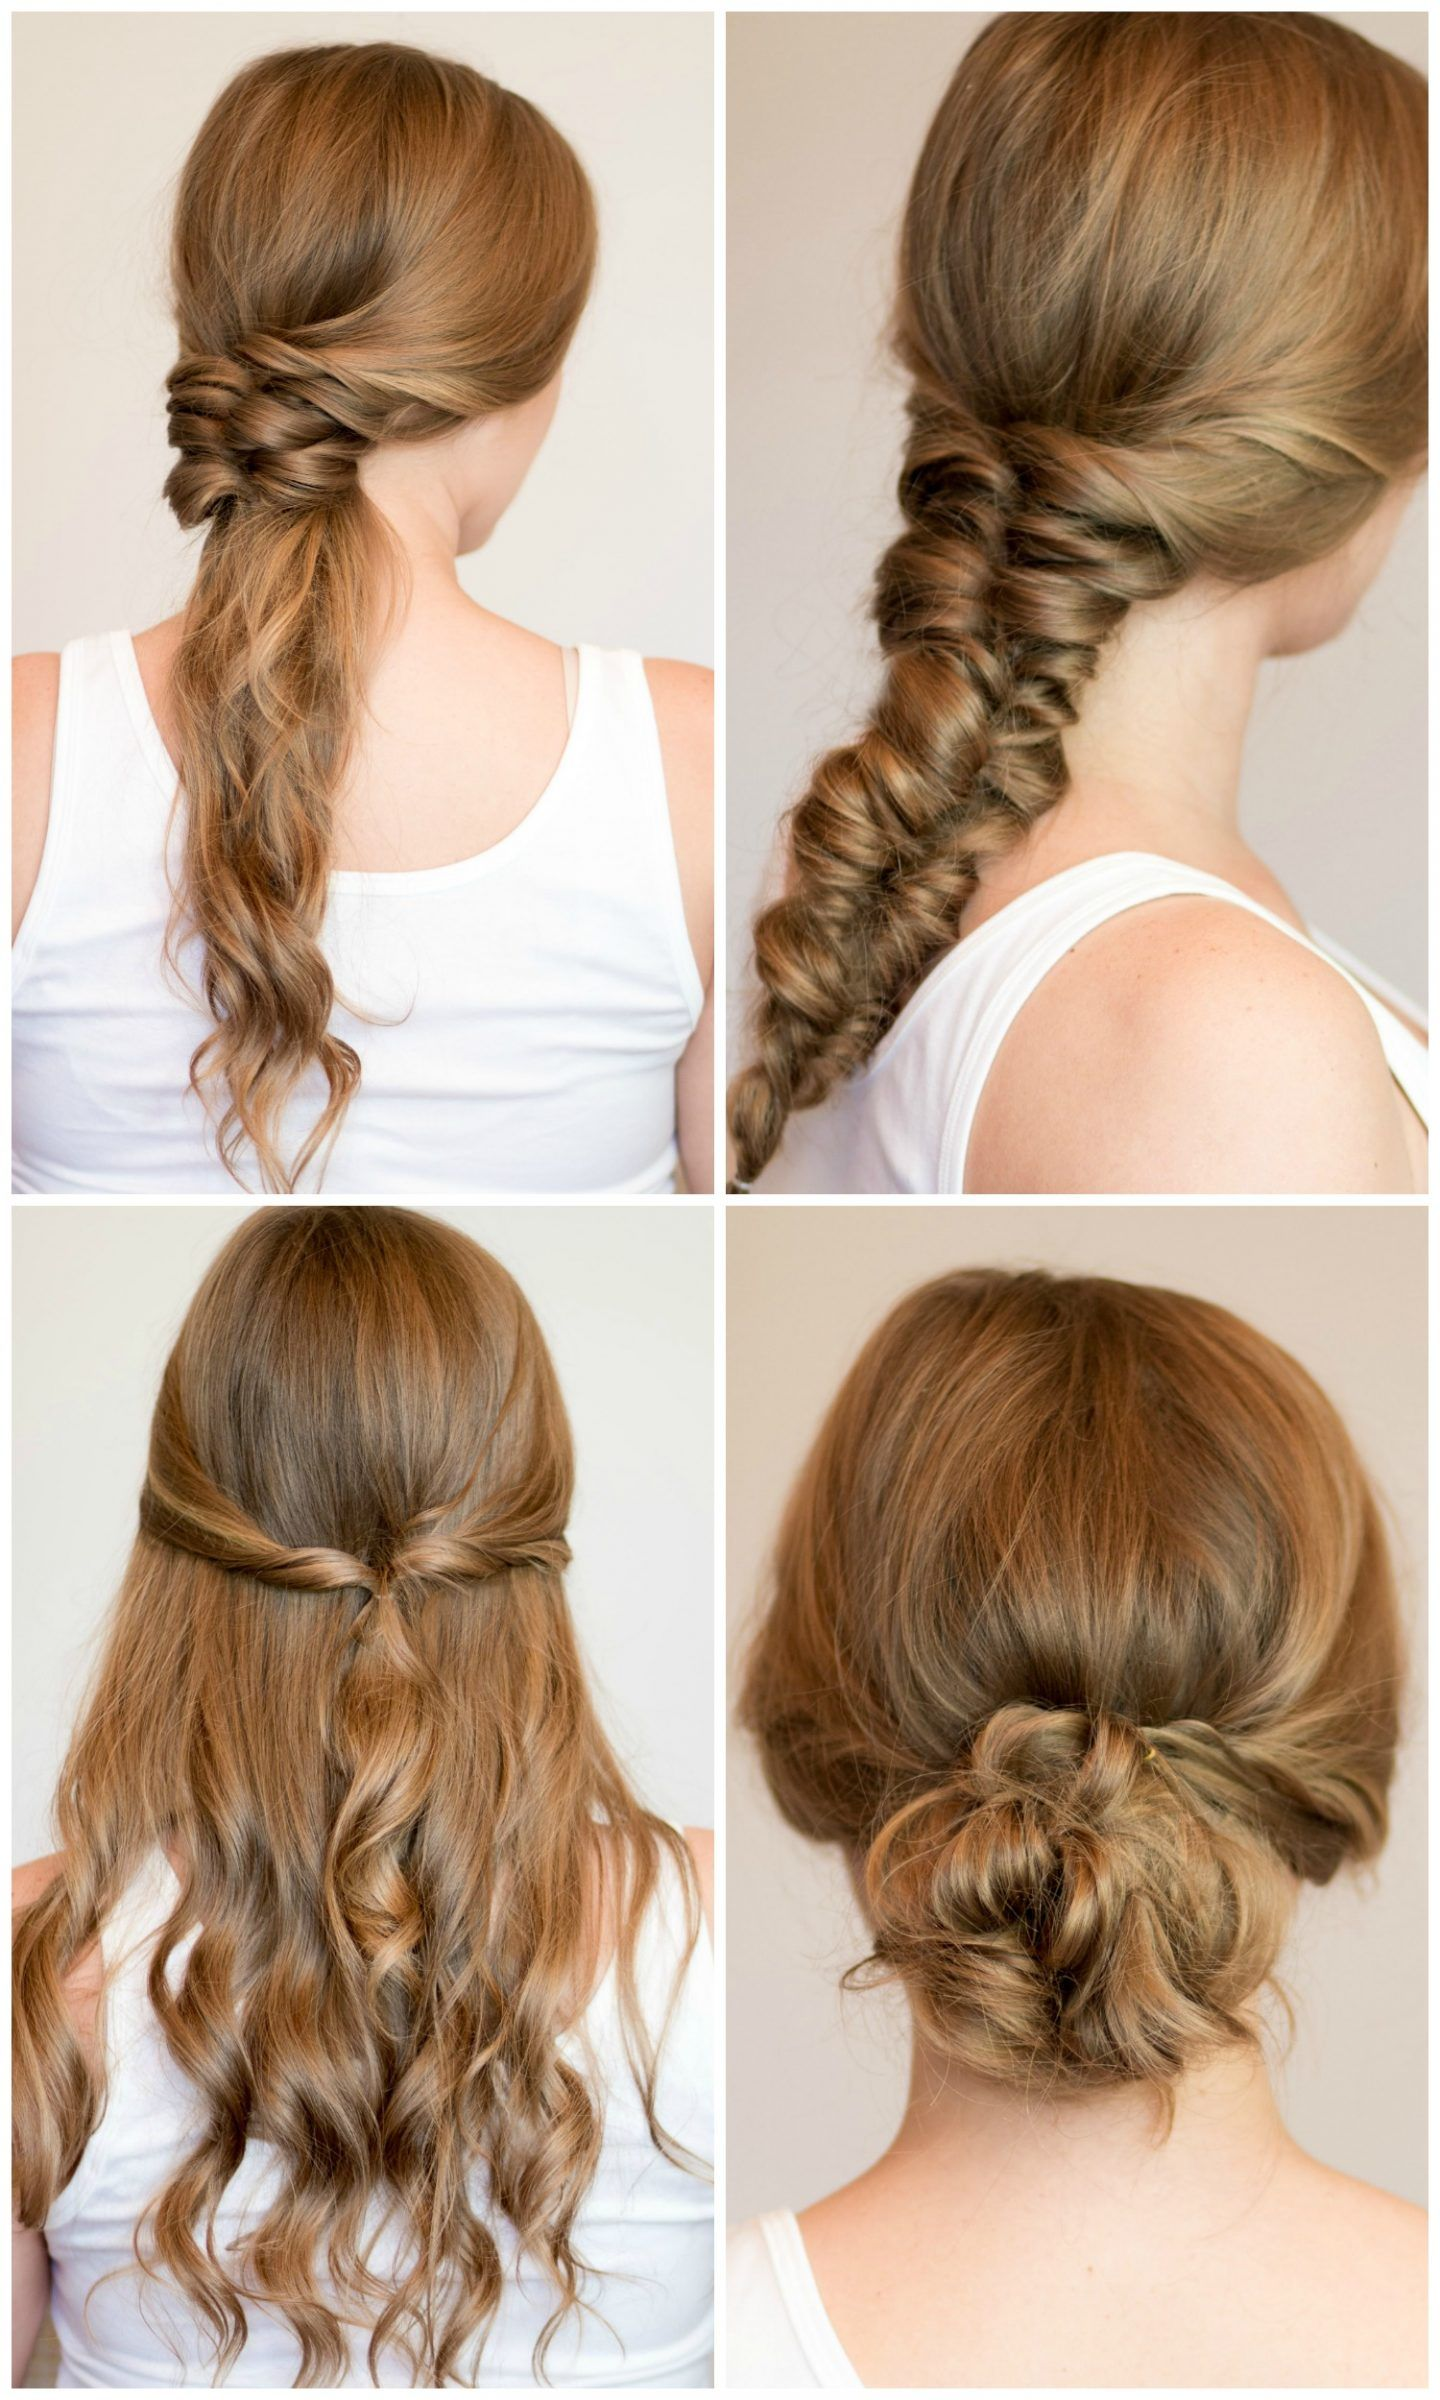 4 Easy Heatless Hairstyles For Long Hair Heatless Hairstyles Long Hair Styles Braids For Long Hair